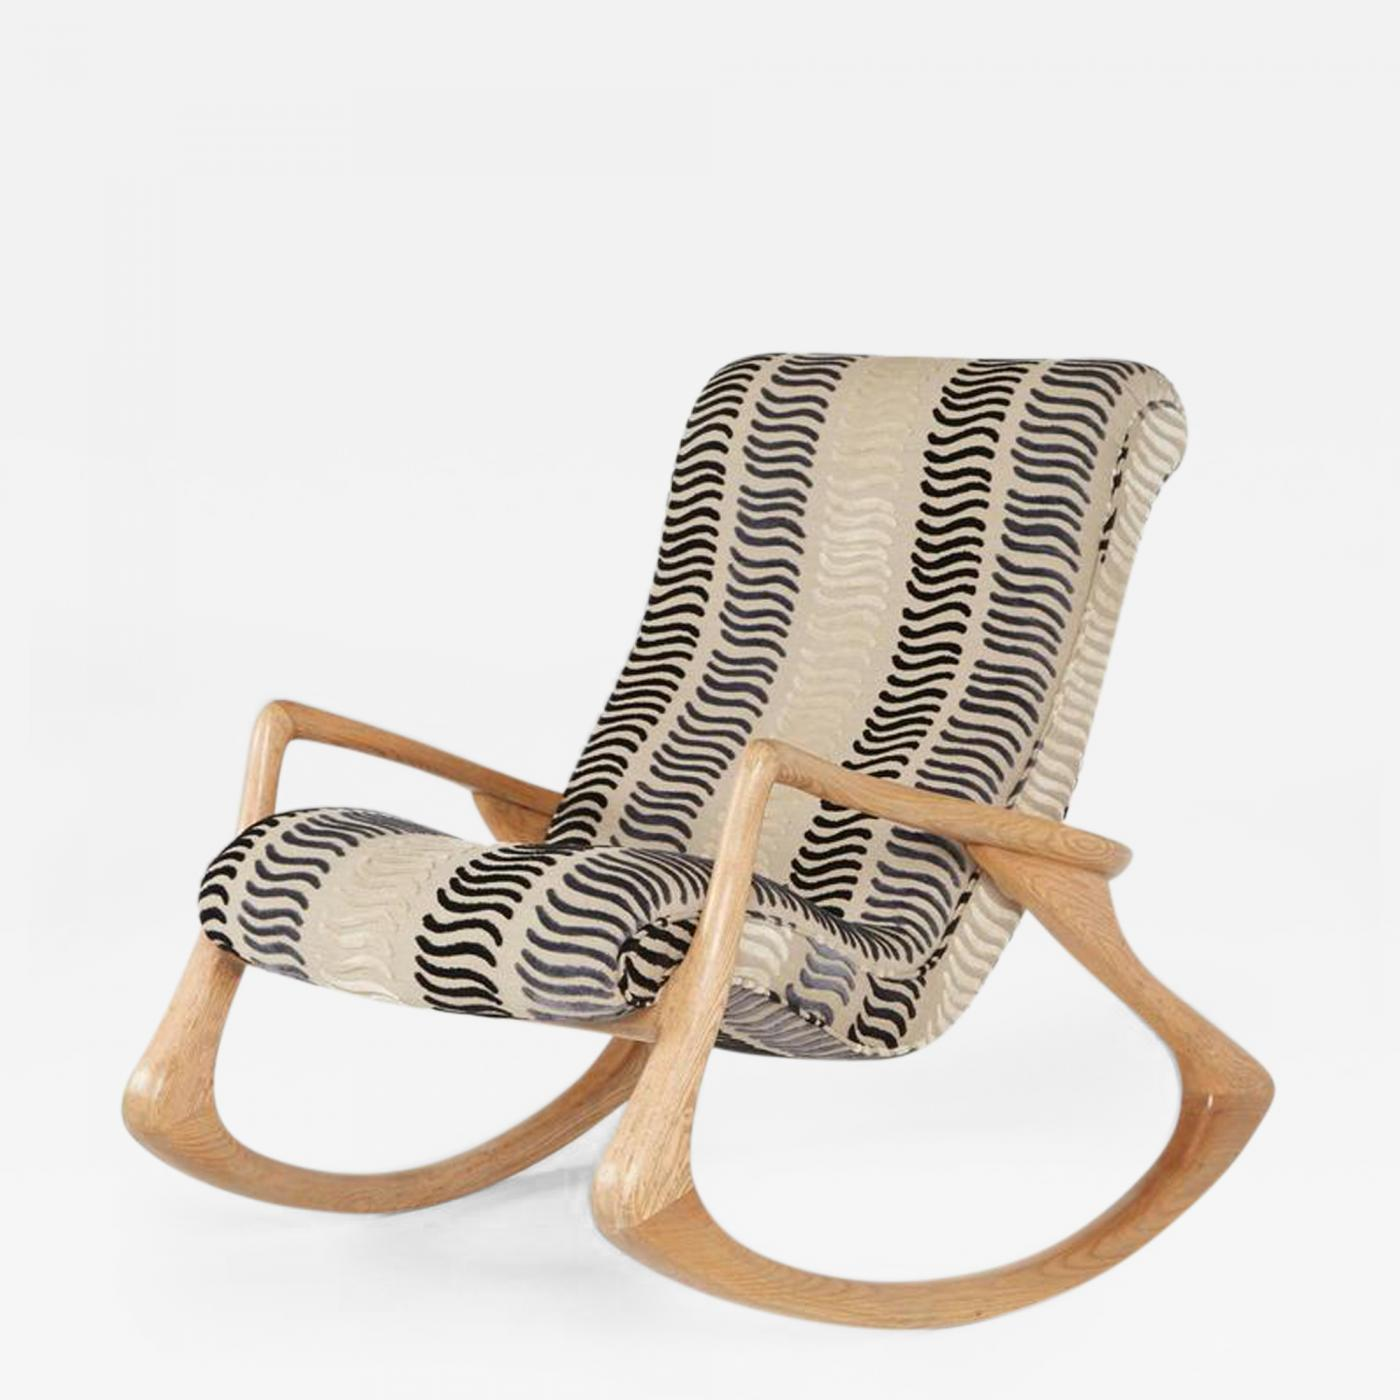 Vladimir Kagan Vladimir Kagan Contour Rocking Chair Rare Oak